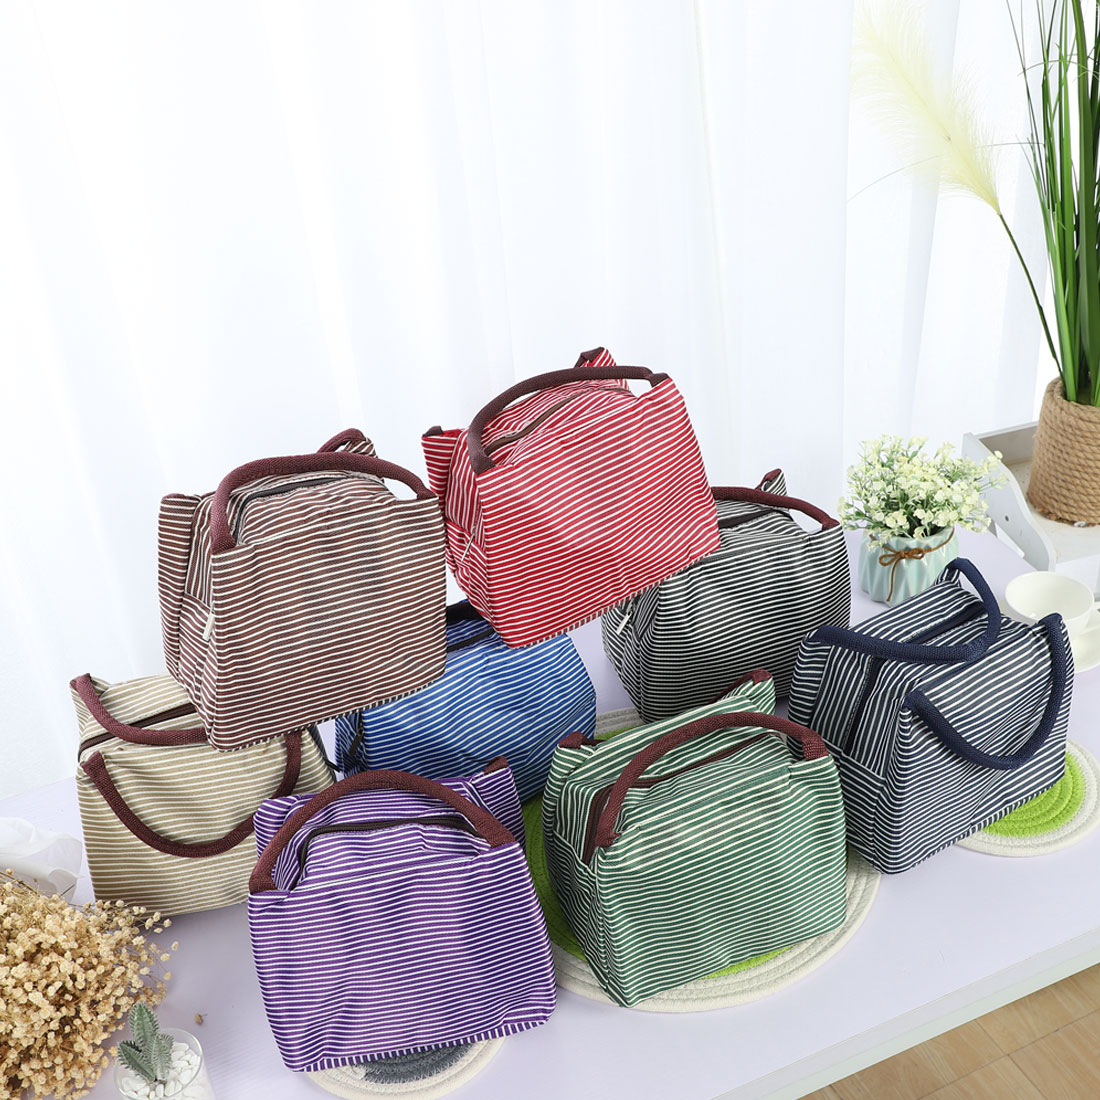 Lunch Bag Warmer Cooler Travel Food Box Tote Carry Insulated Bags Khaki+White - image 5 de 7